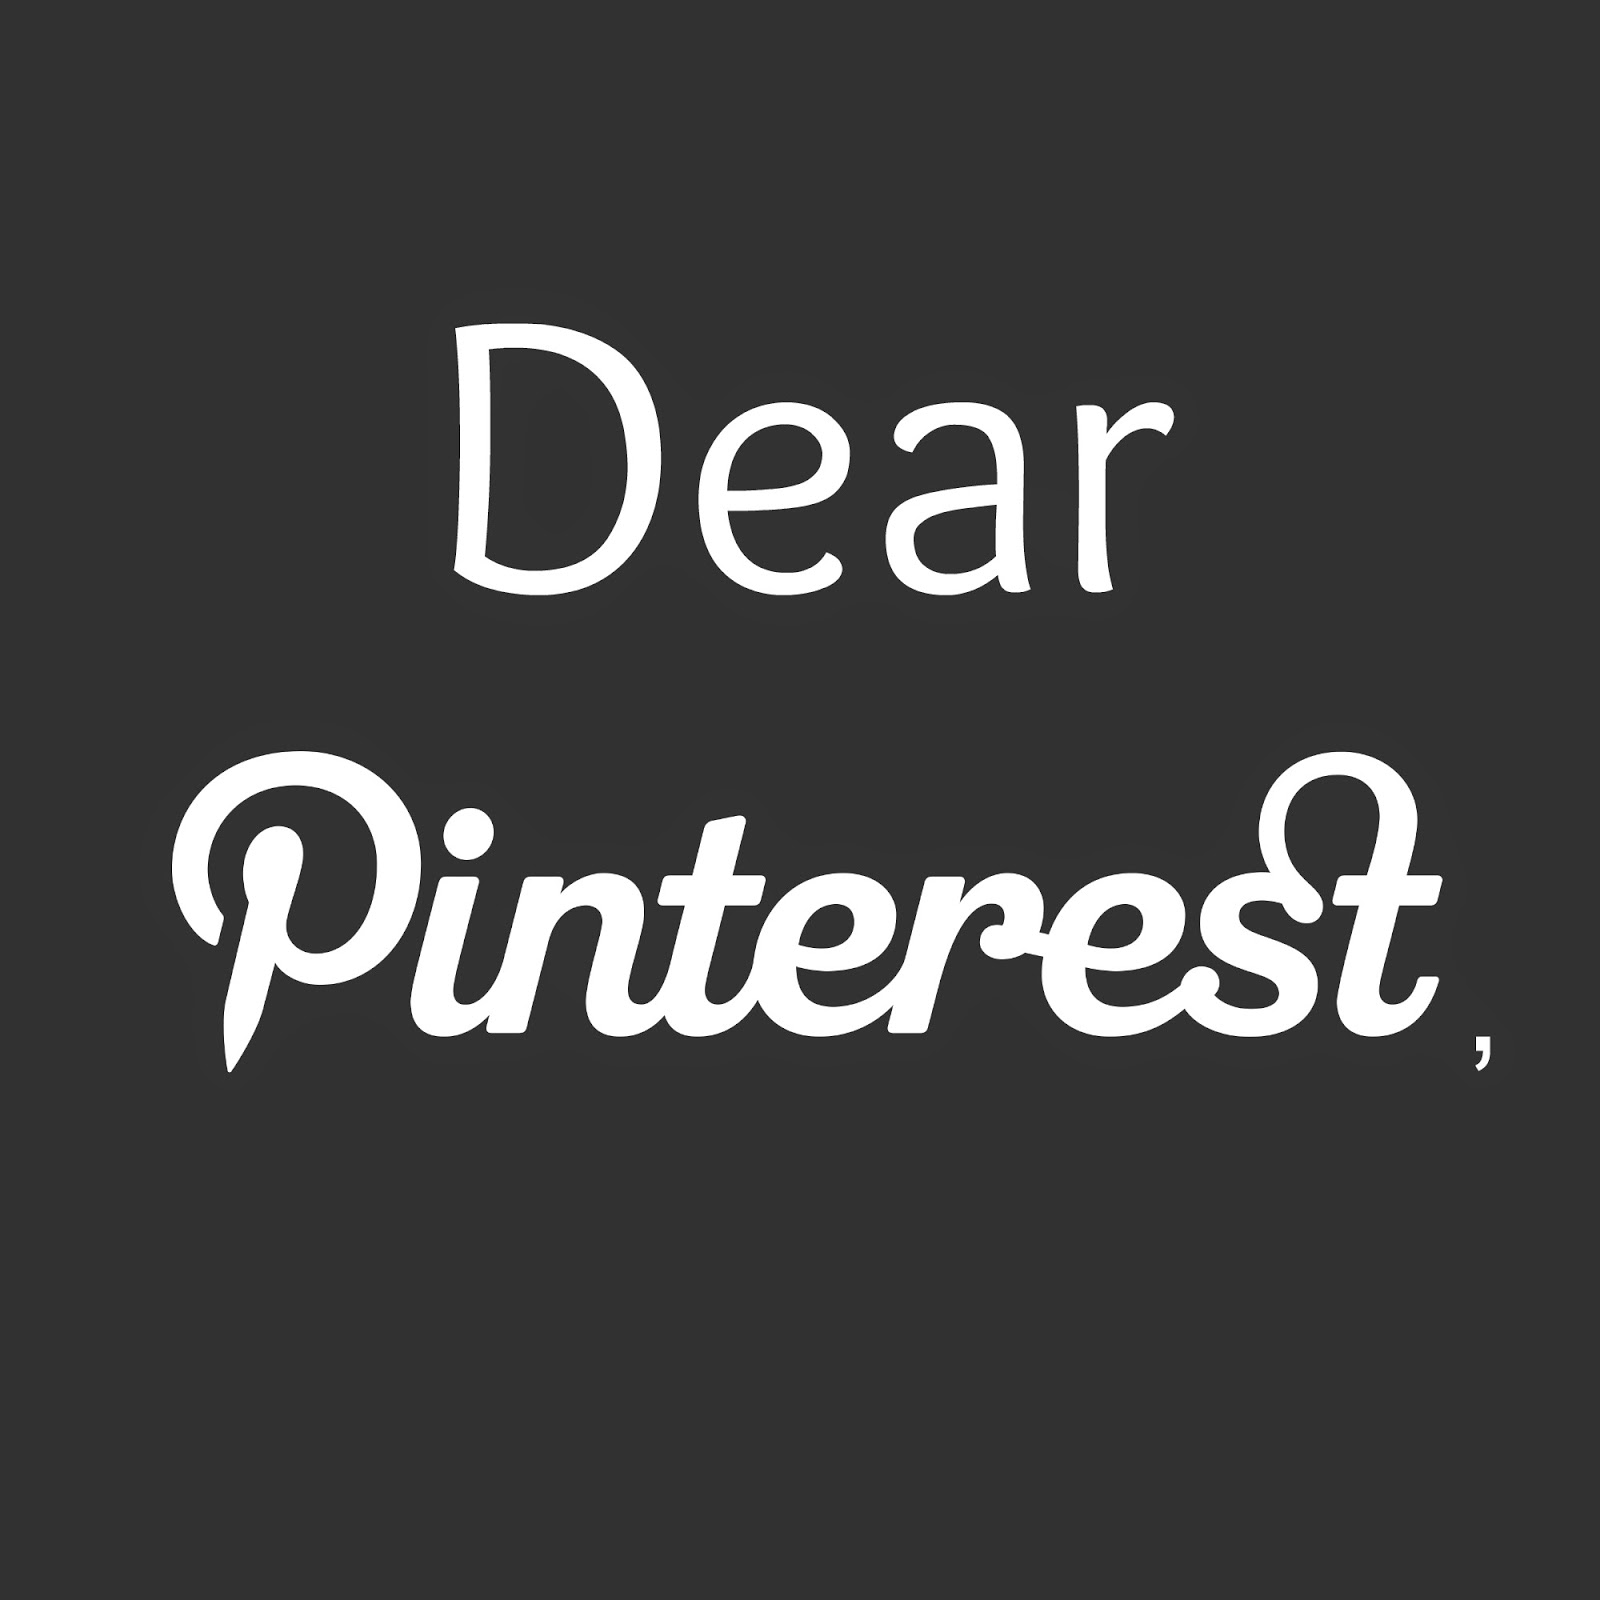 a Pinterest wish list